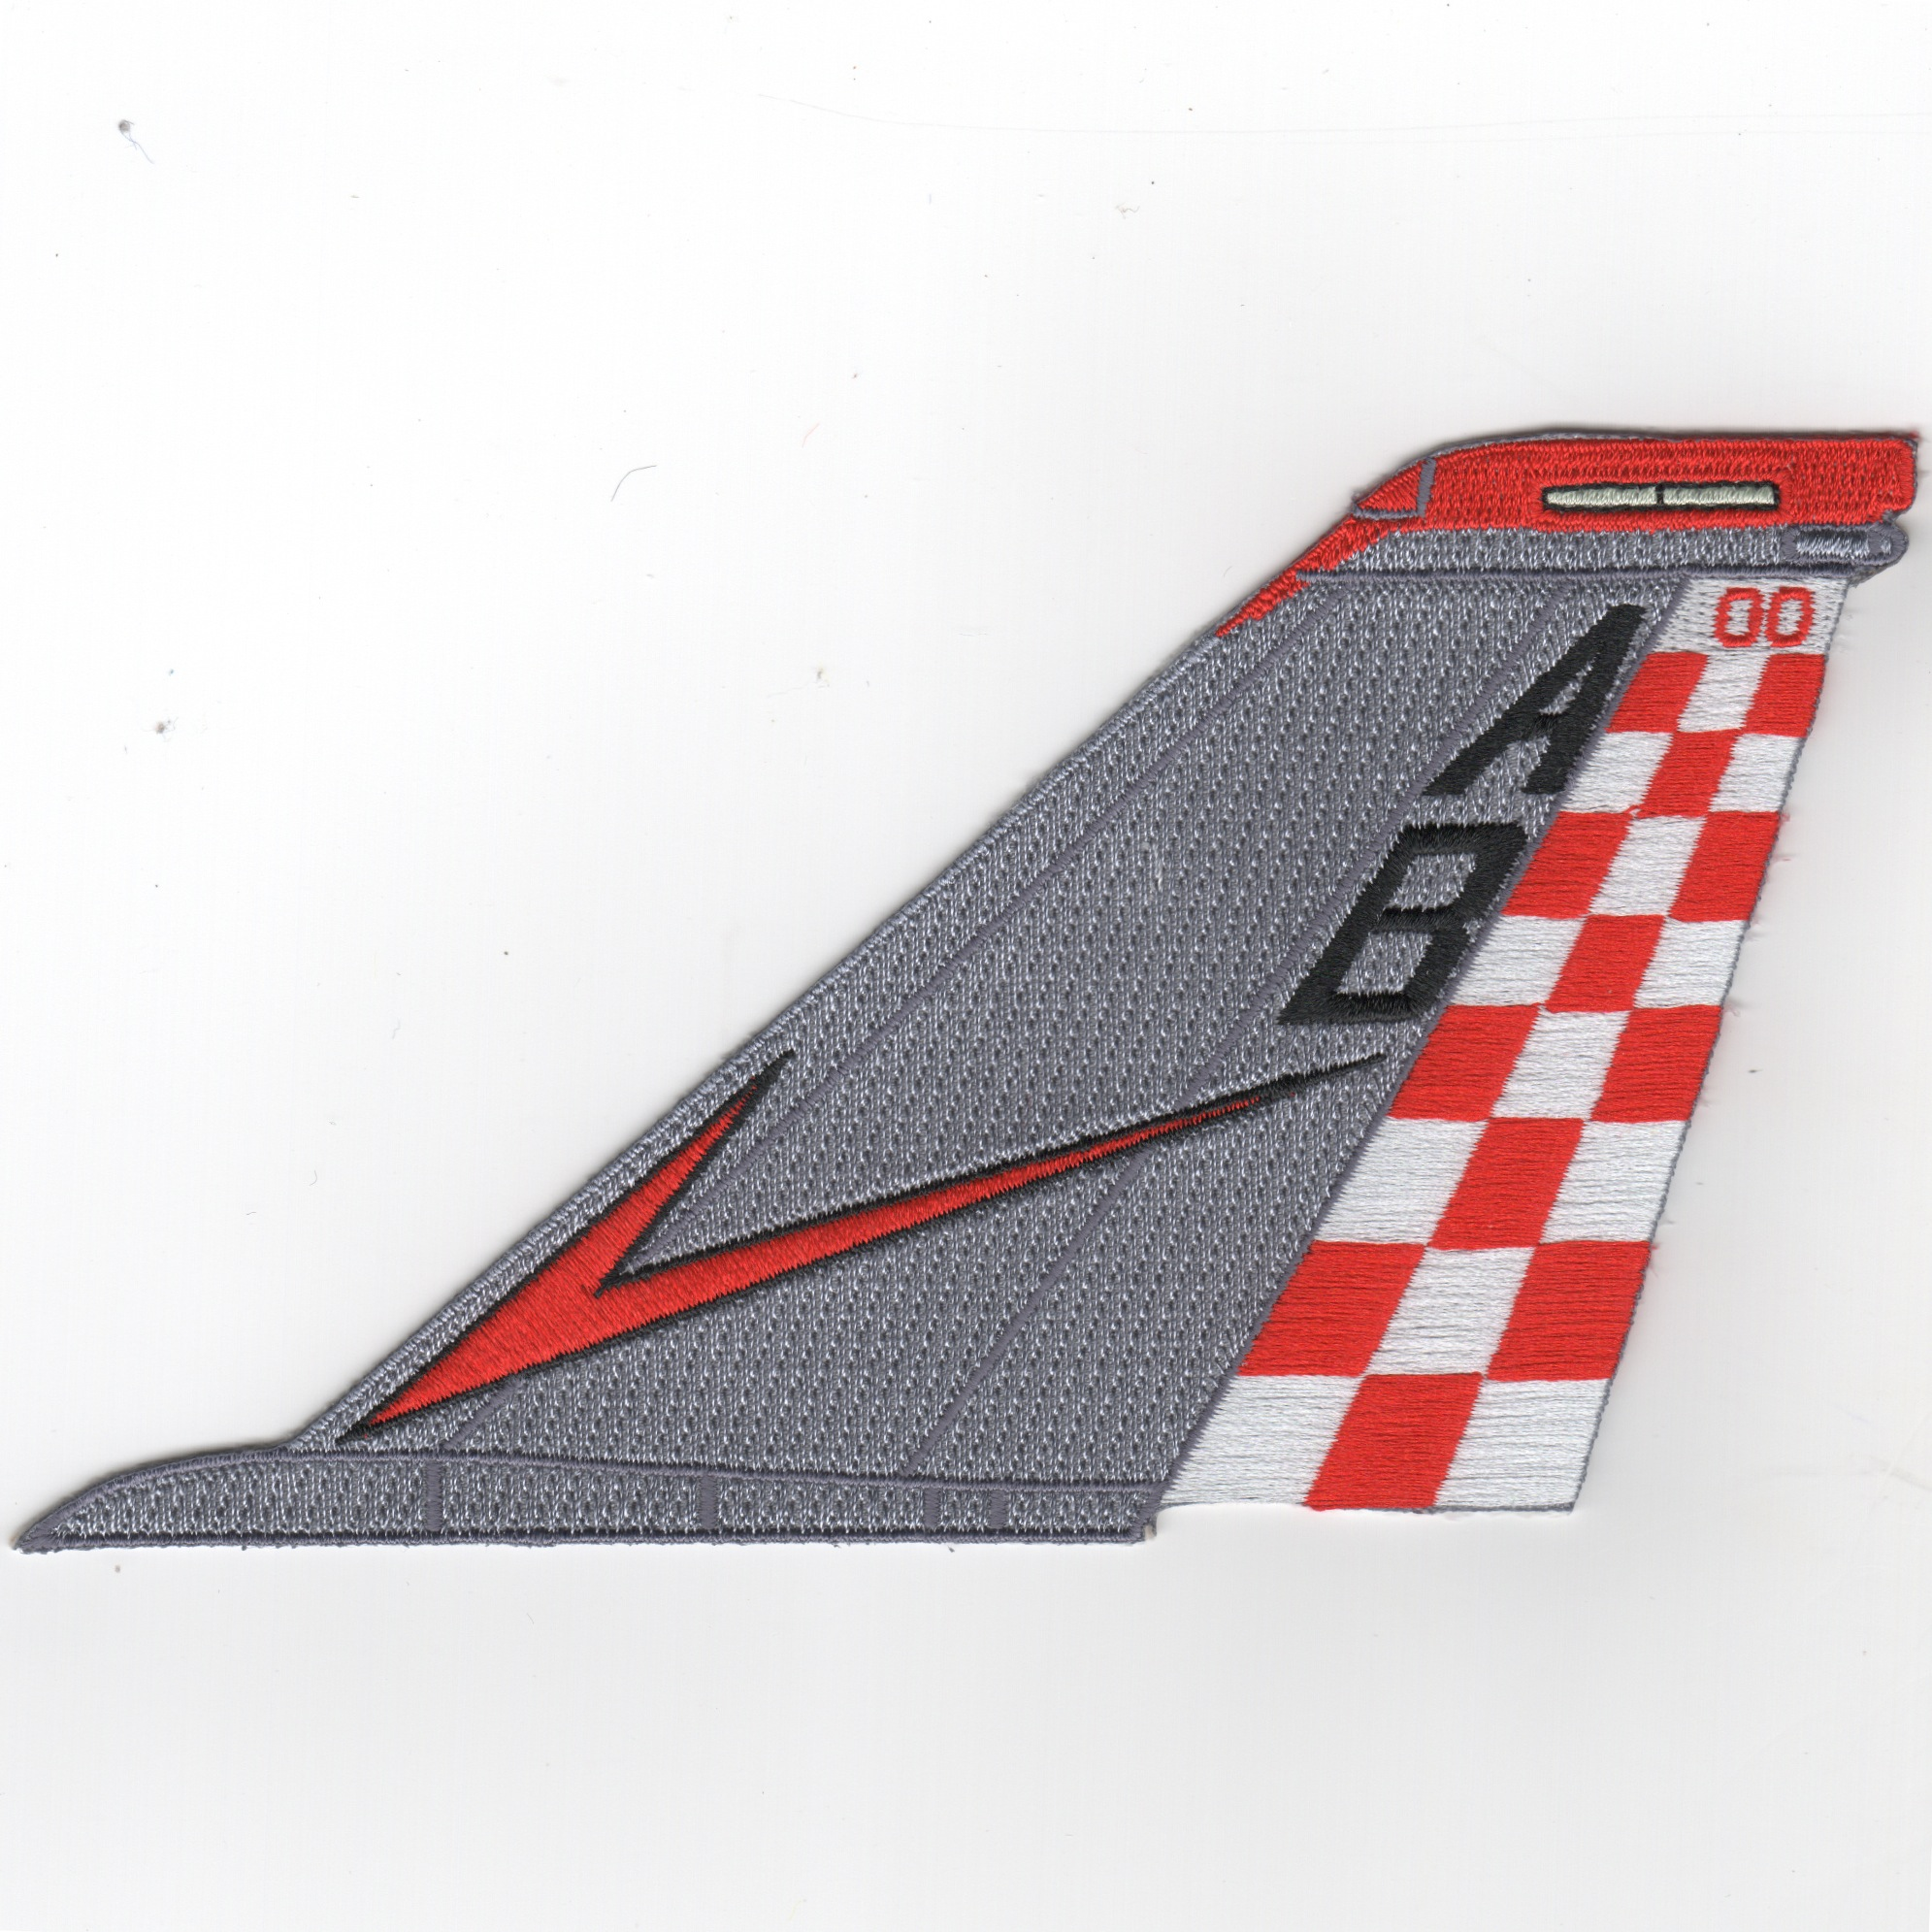 VF-211 F-14 Tailfin (No Text/Chevron)